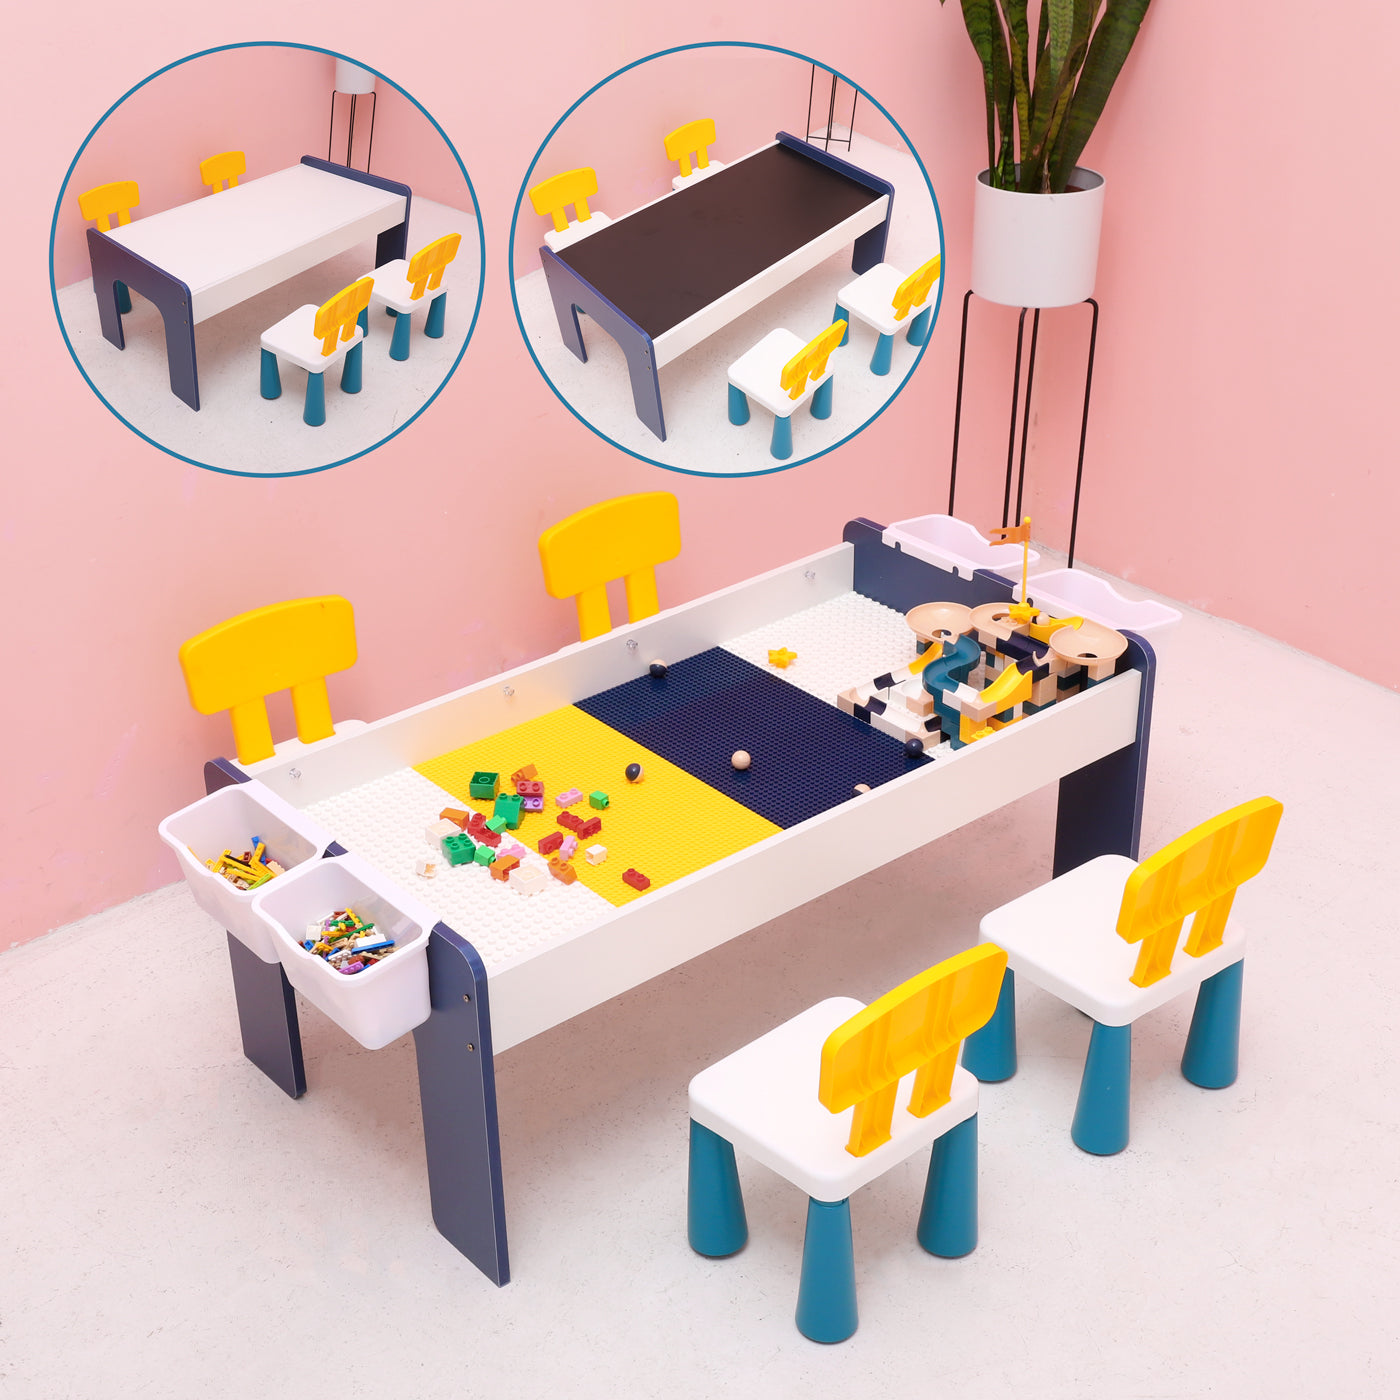 4 in 1 Kids Multi Activity Play Table Set with 4 Chairs, Chalk Board, 1200pcs Building Bricks